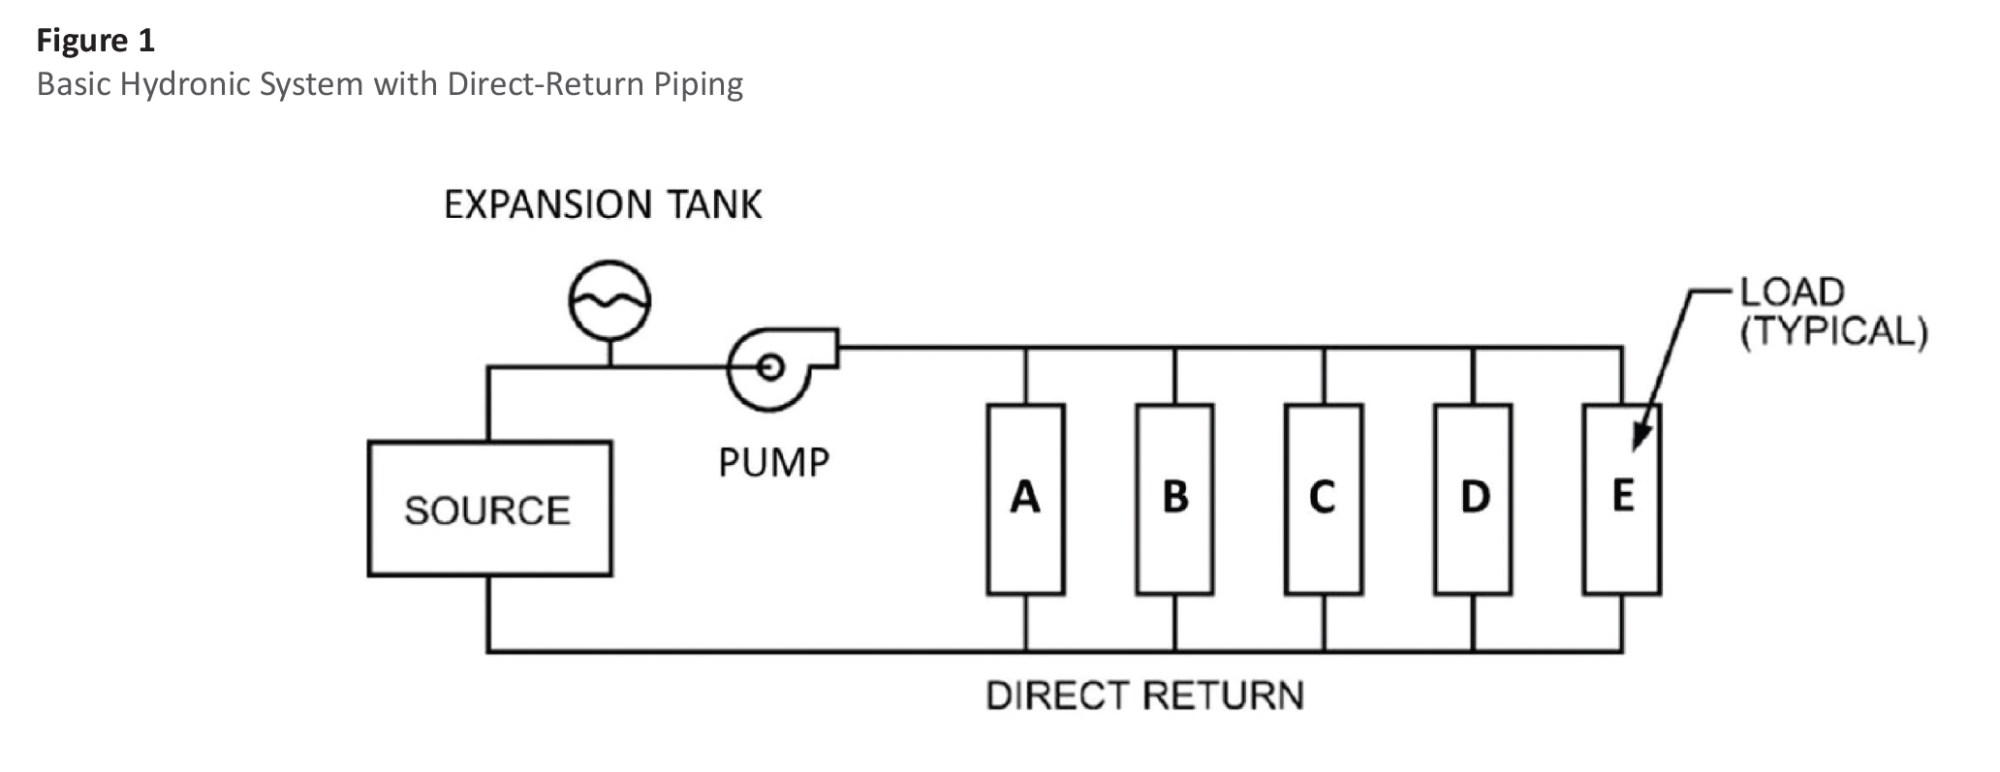 hight resolution of although the expansion tank is not directly in the flow path it is typically insulated to the same level as the piping to minimize heat loss heat gains to